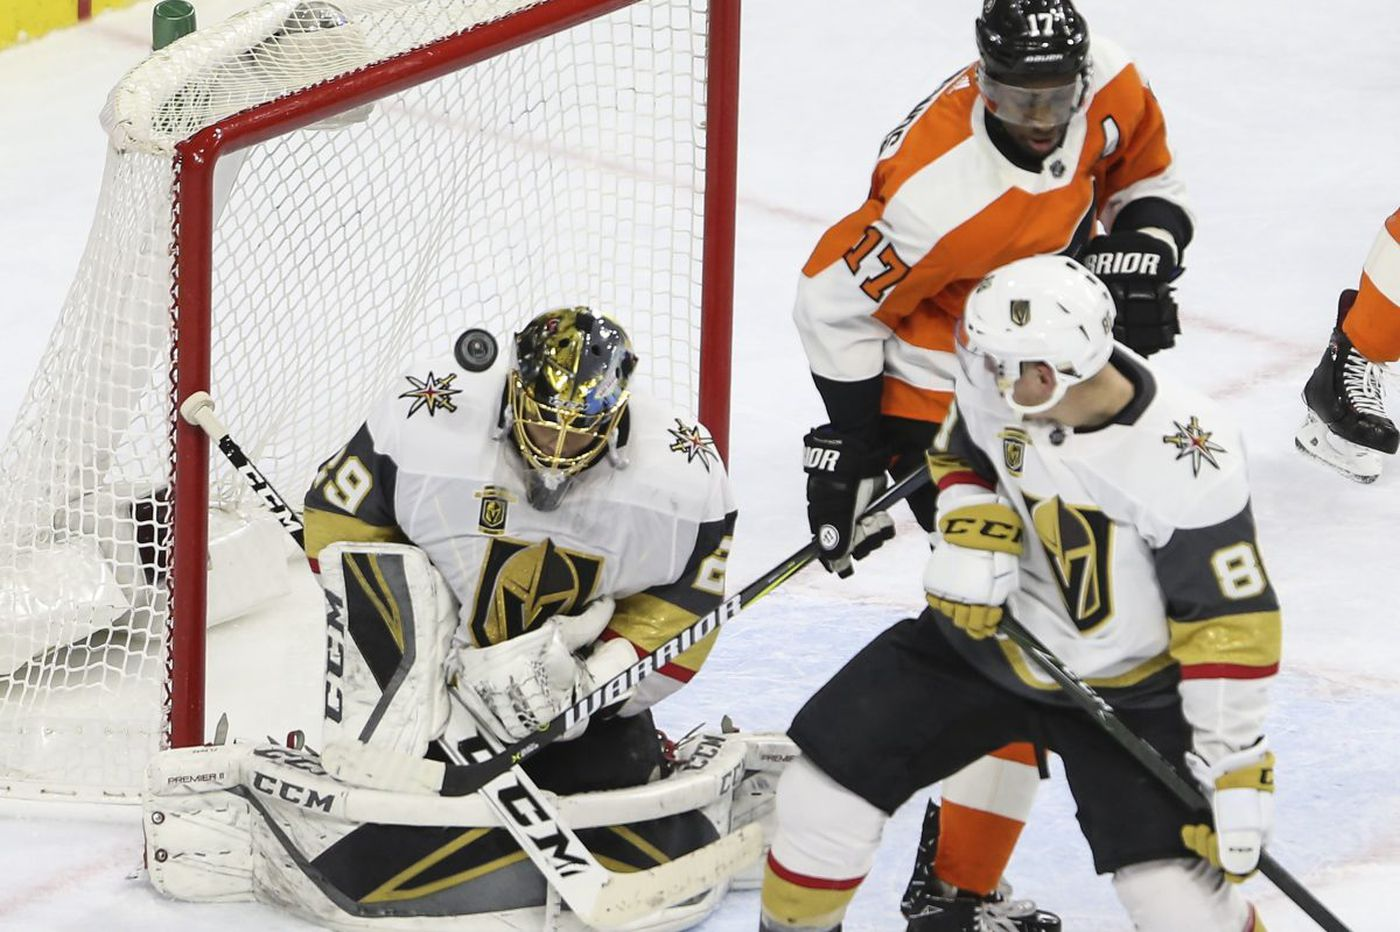 It's easy to see why Vegas is in Stanley Cup Finals and Flyers aren't | Sam Carchidi